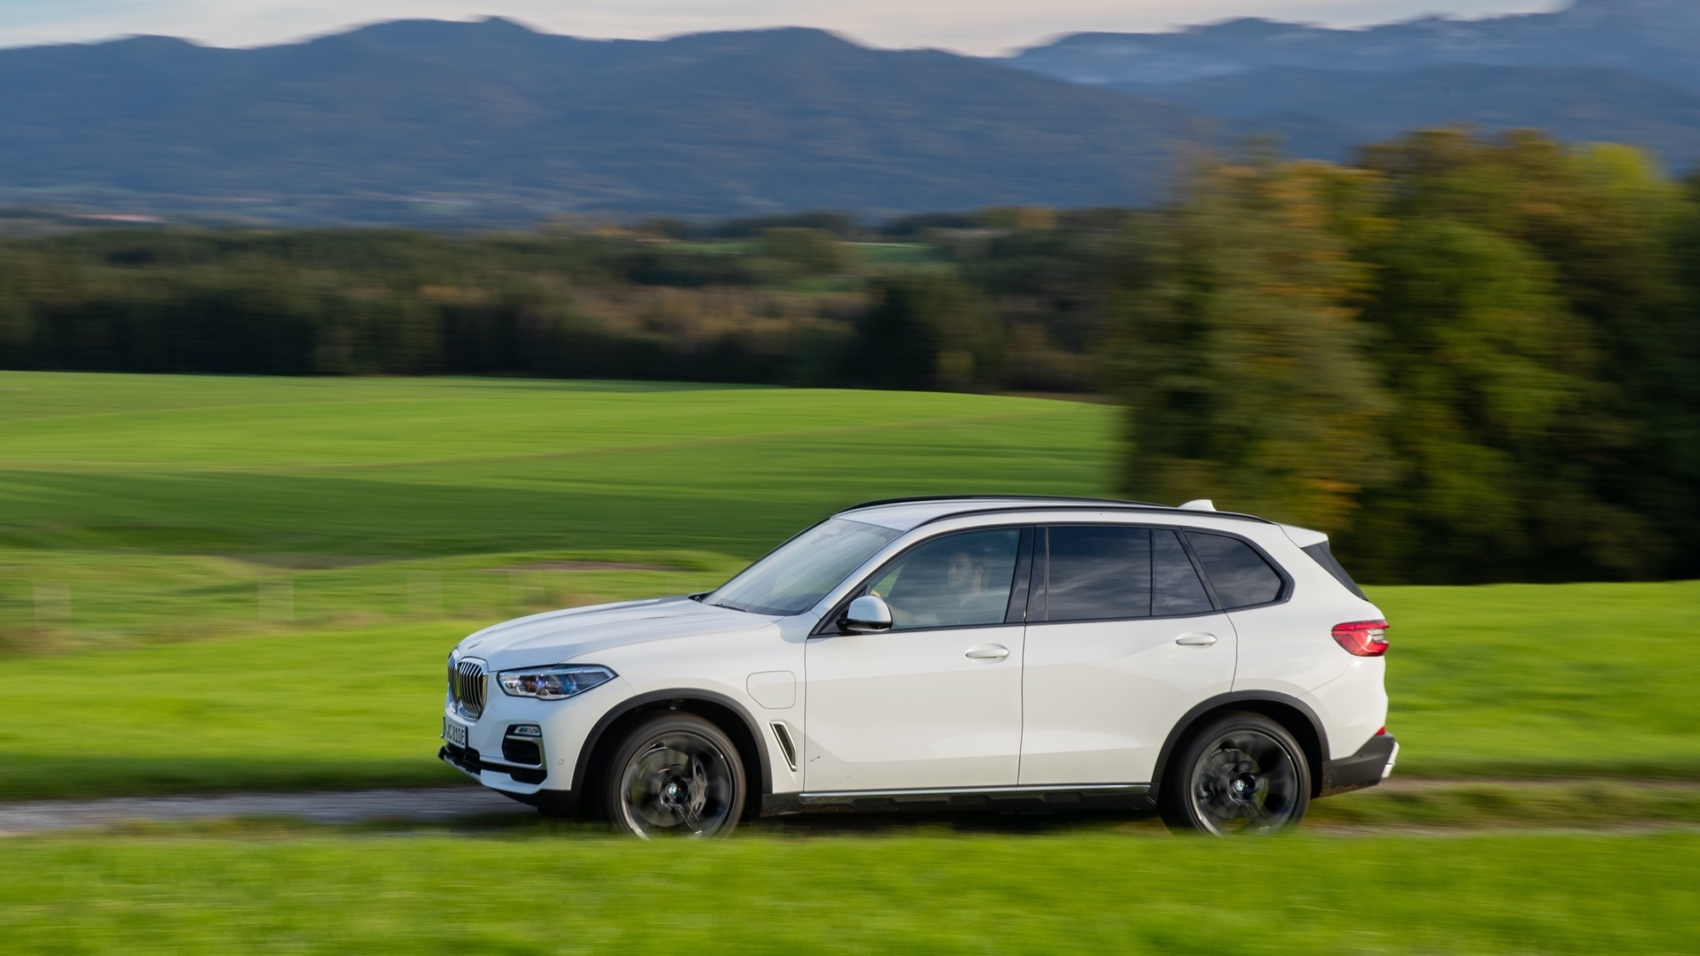 2020-BMW-X5-xDrive45e-test-drive-37